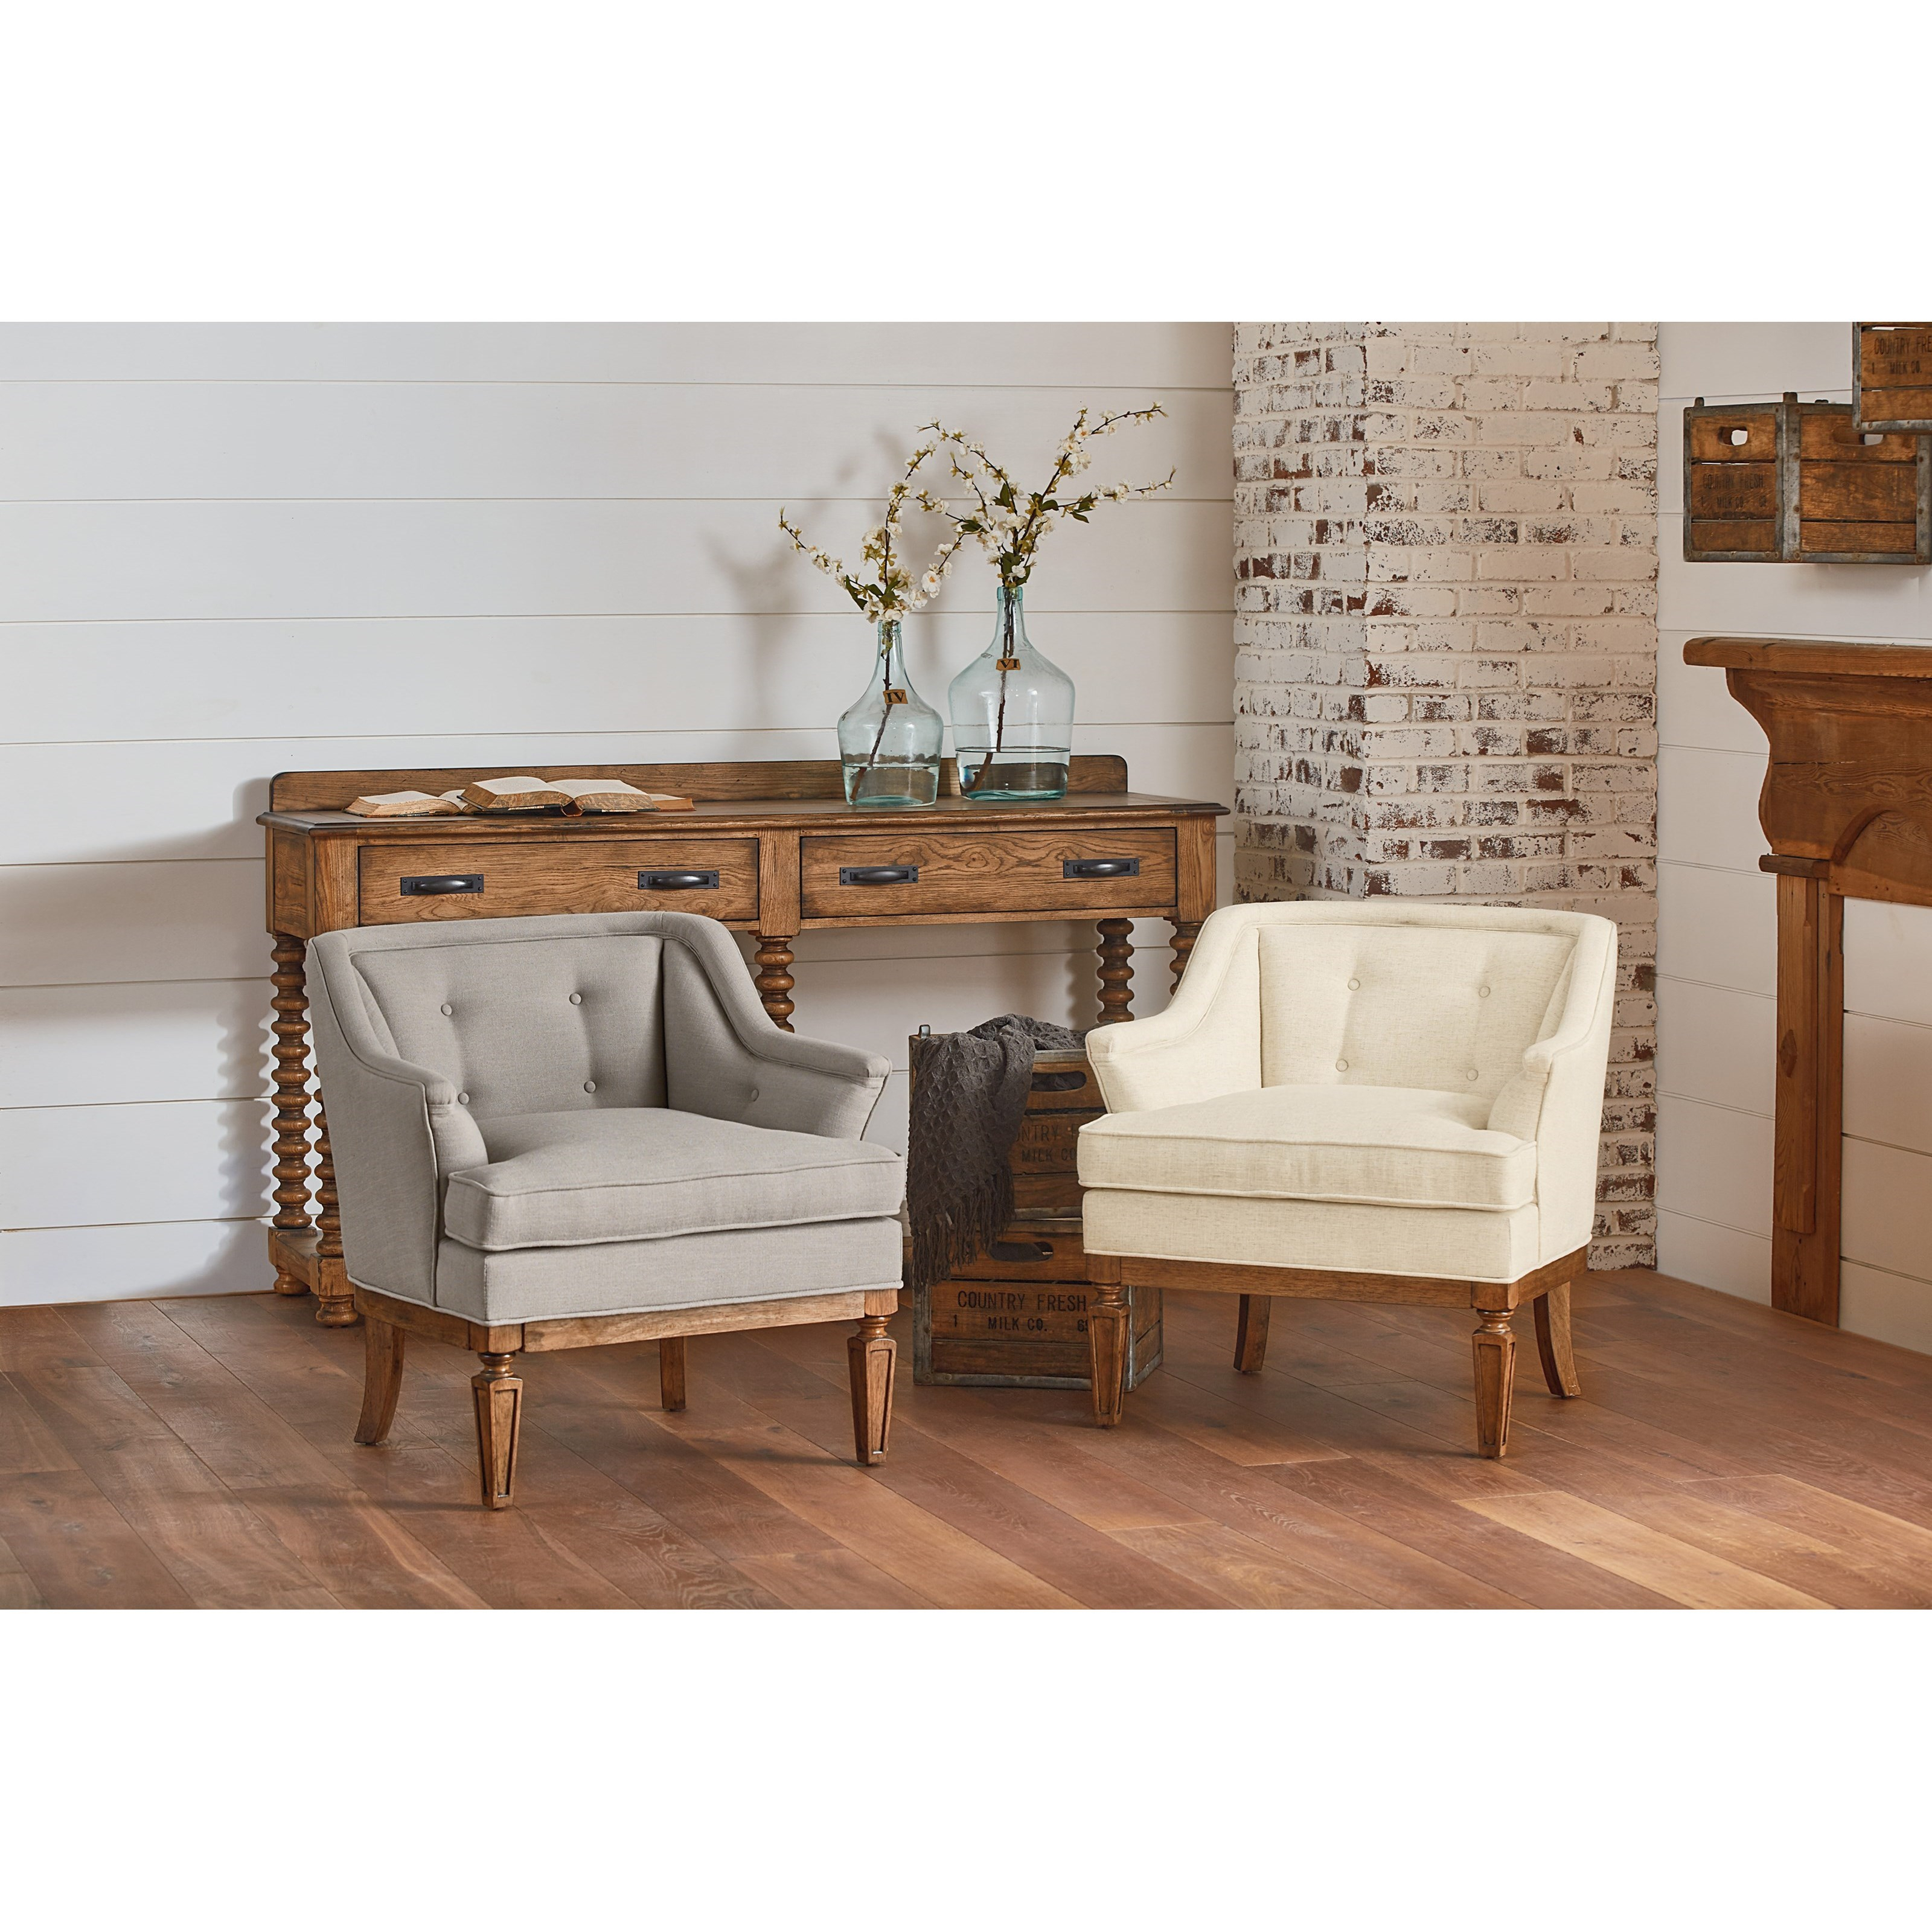 Cordial Magnolia Home Magnolia Homejoanna Gaines House For With Magnolia Home Homestead Sofa Chairs By Joanna Gaines (Image 2 of 25)